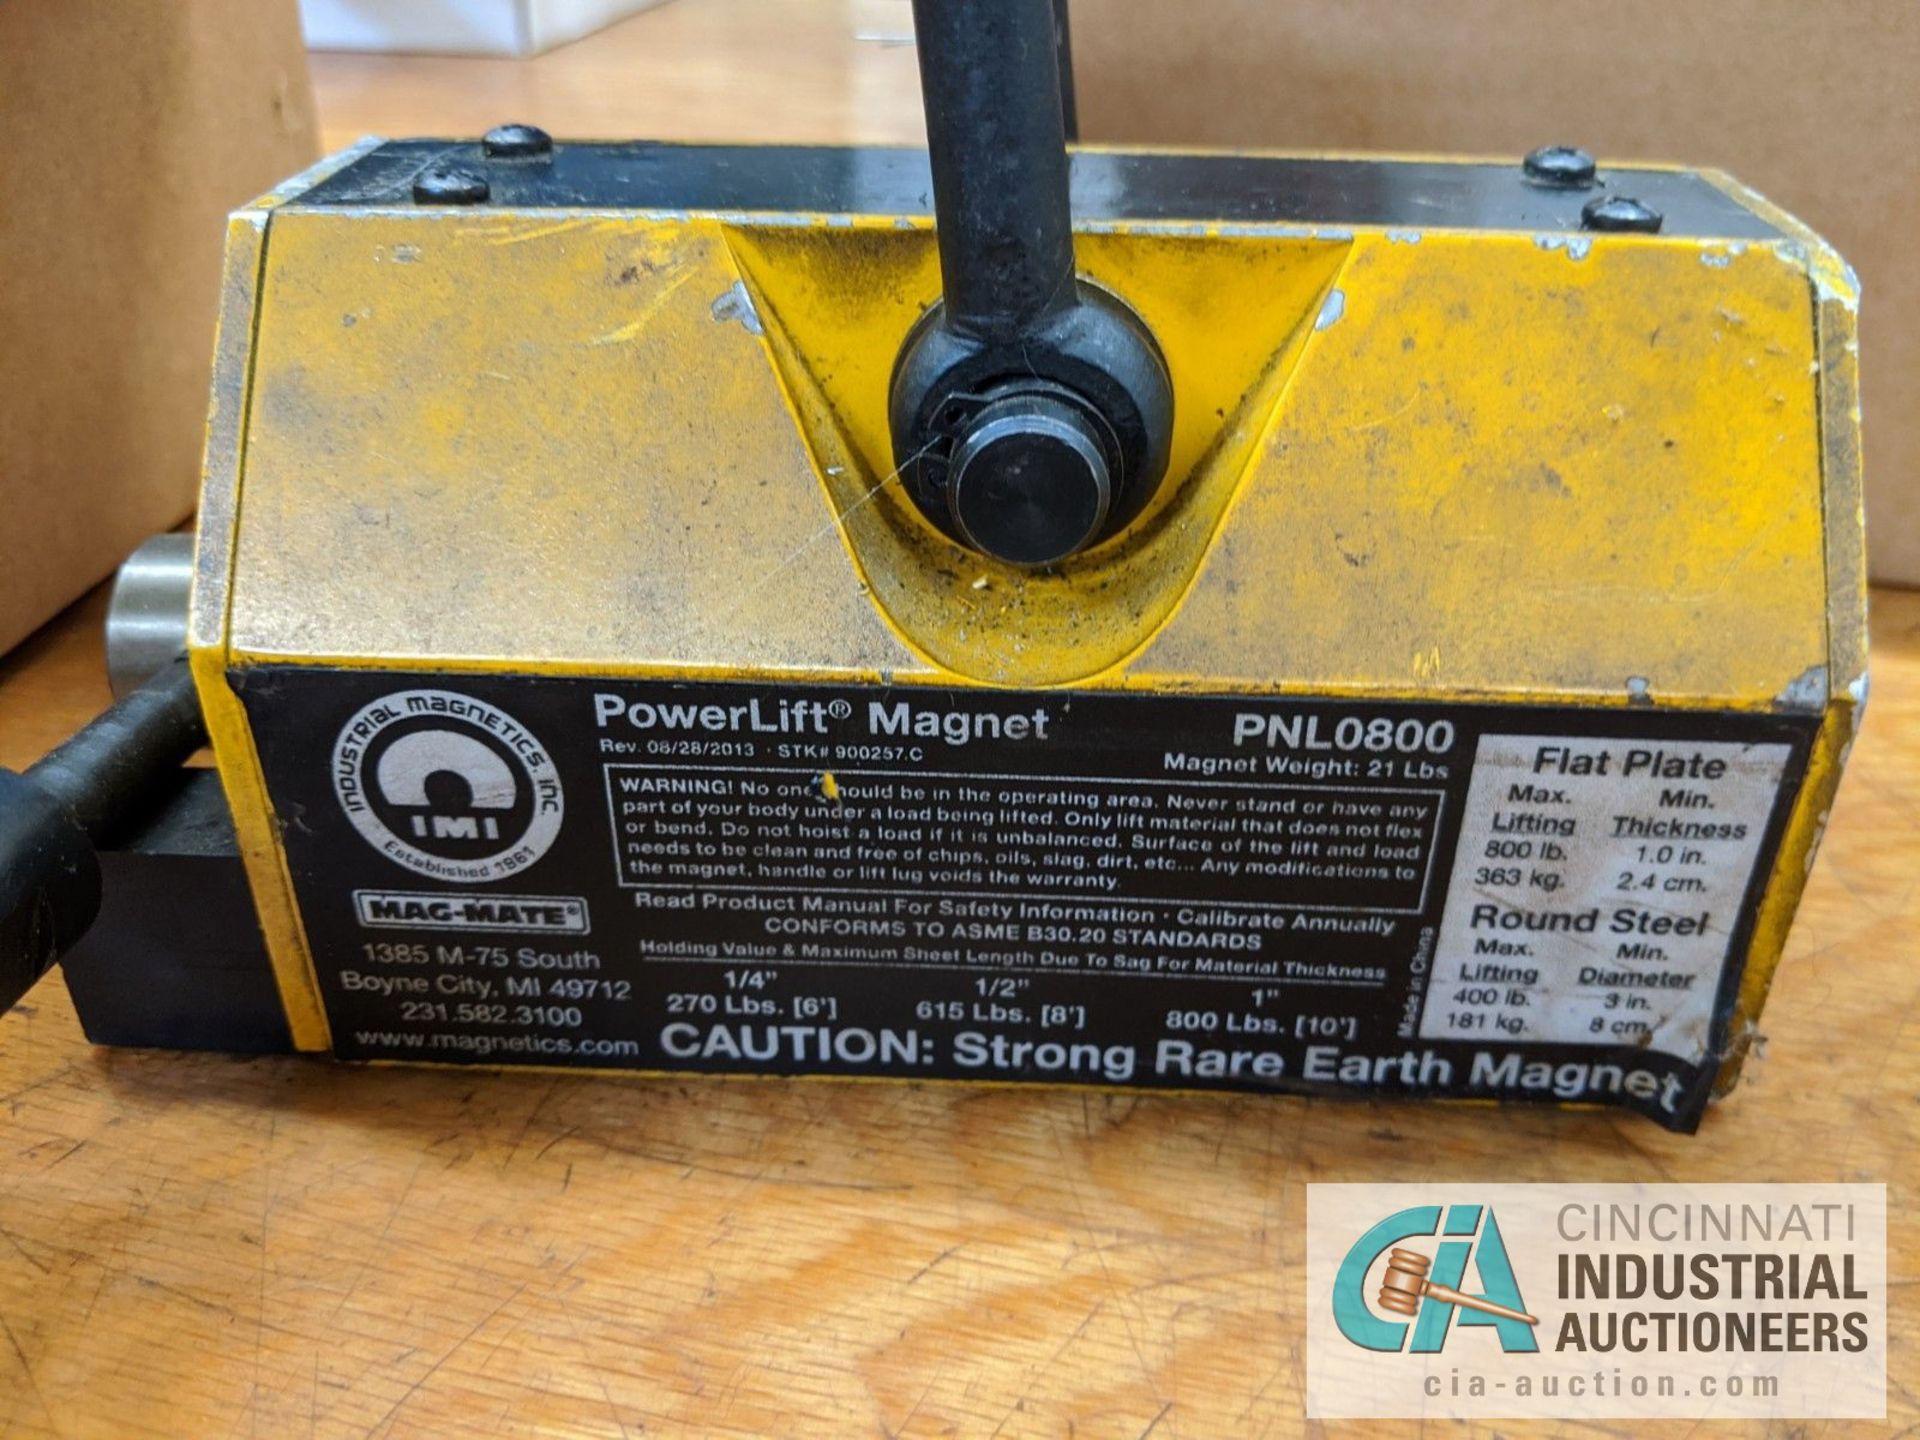 INDUSTRIAL MAGNETS POWER LIFT MAGNET, MODEL PLN0800, UP TO 800 LB. - Image 3 of 3